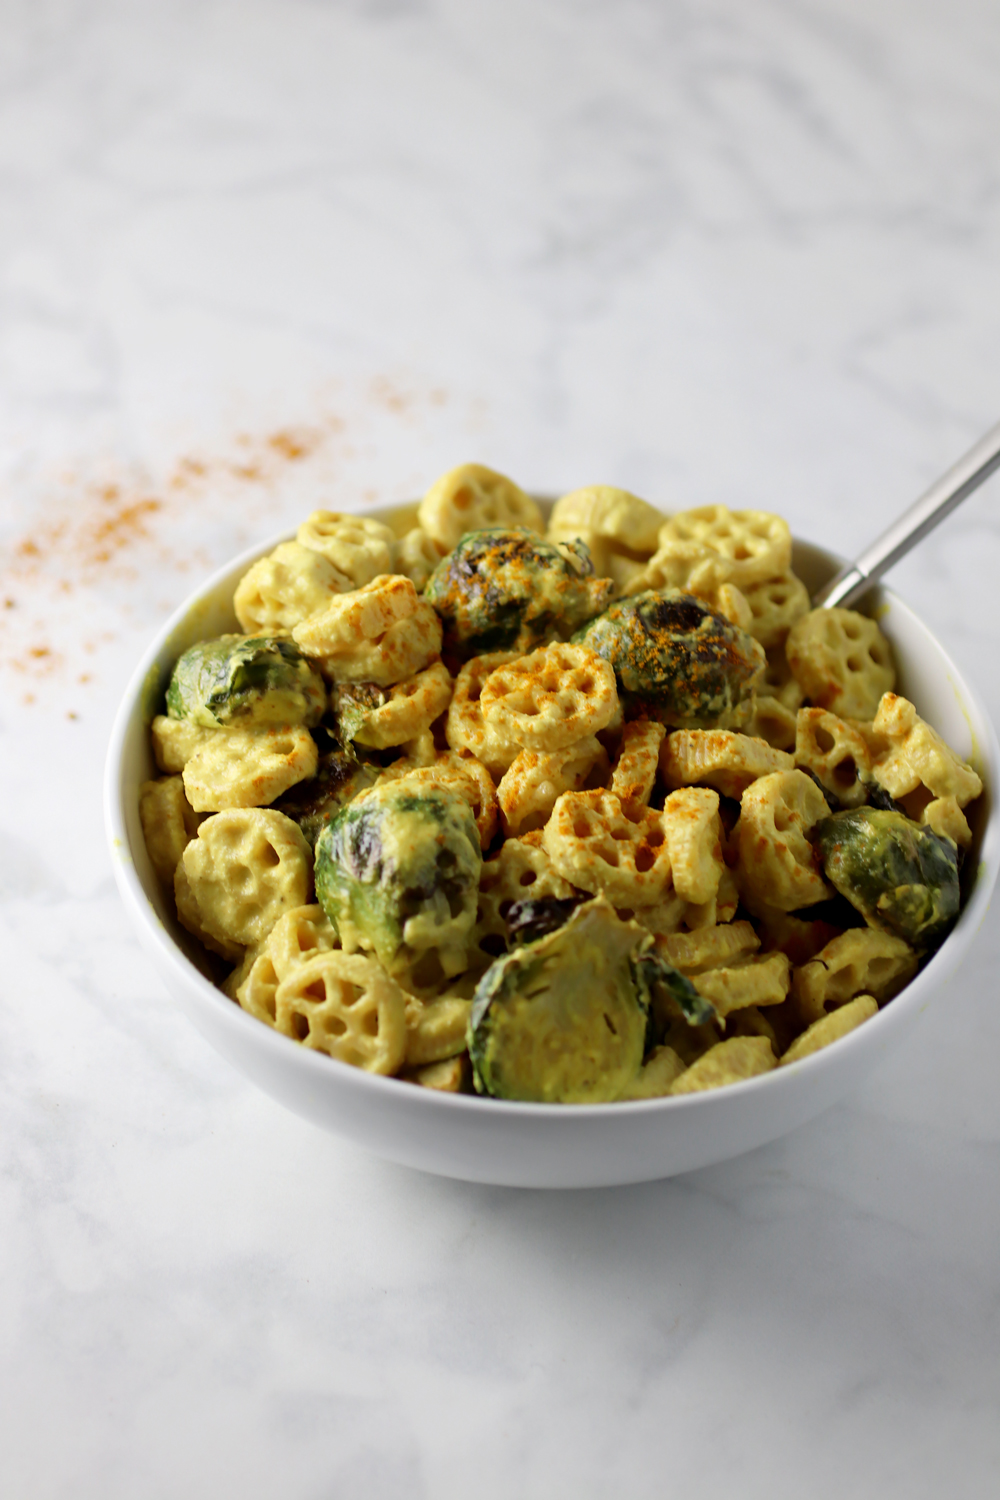 Creamy Vegan Turmeric Mac and Cheese